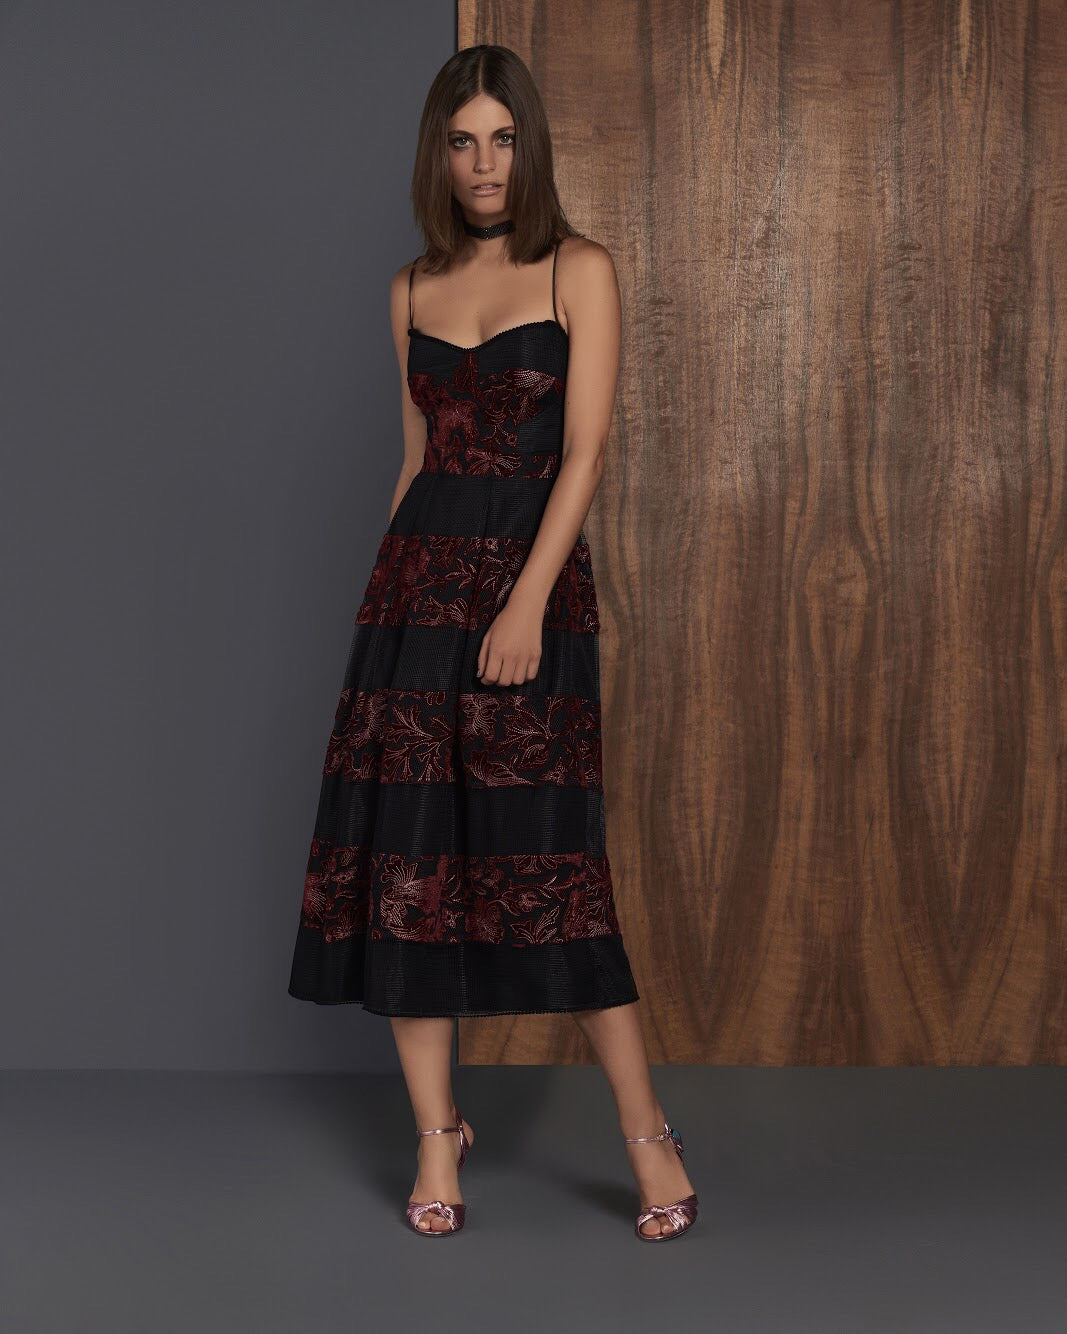 Black & Burgundy velvet and net dress